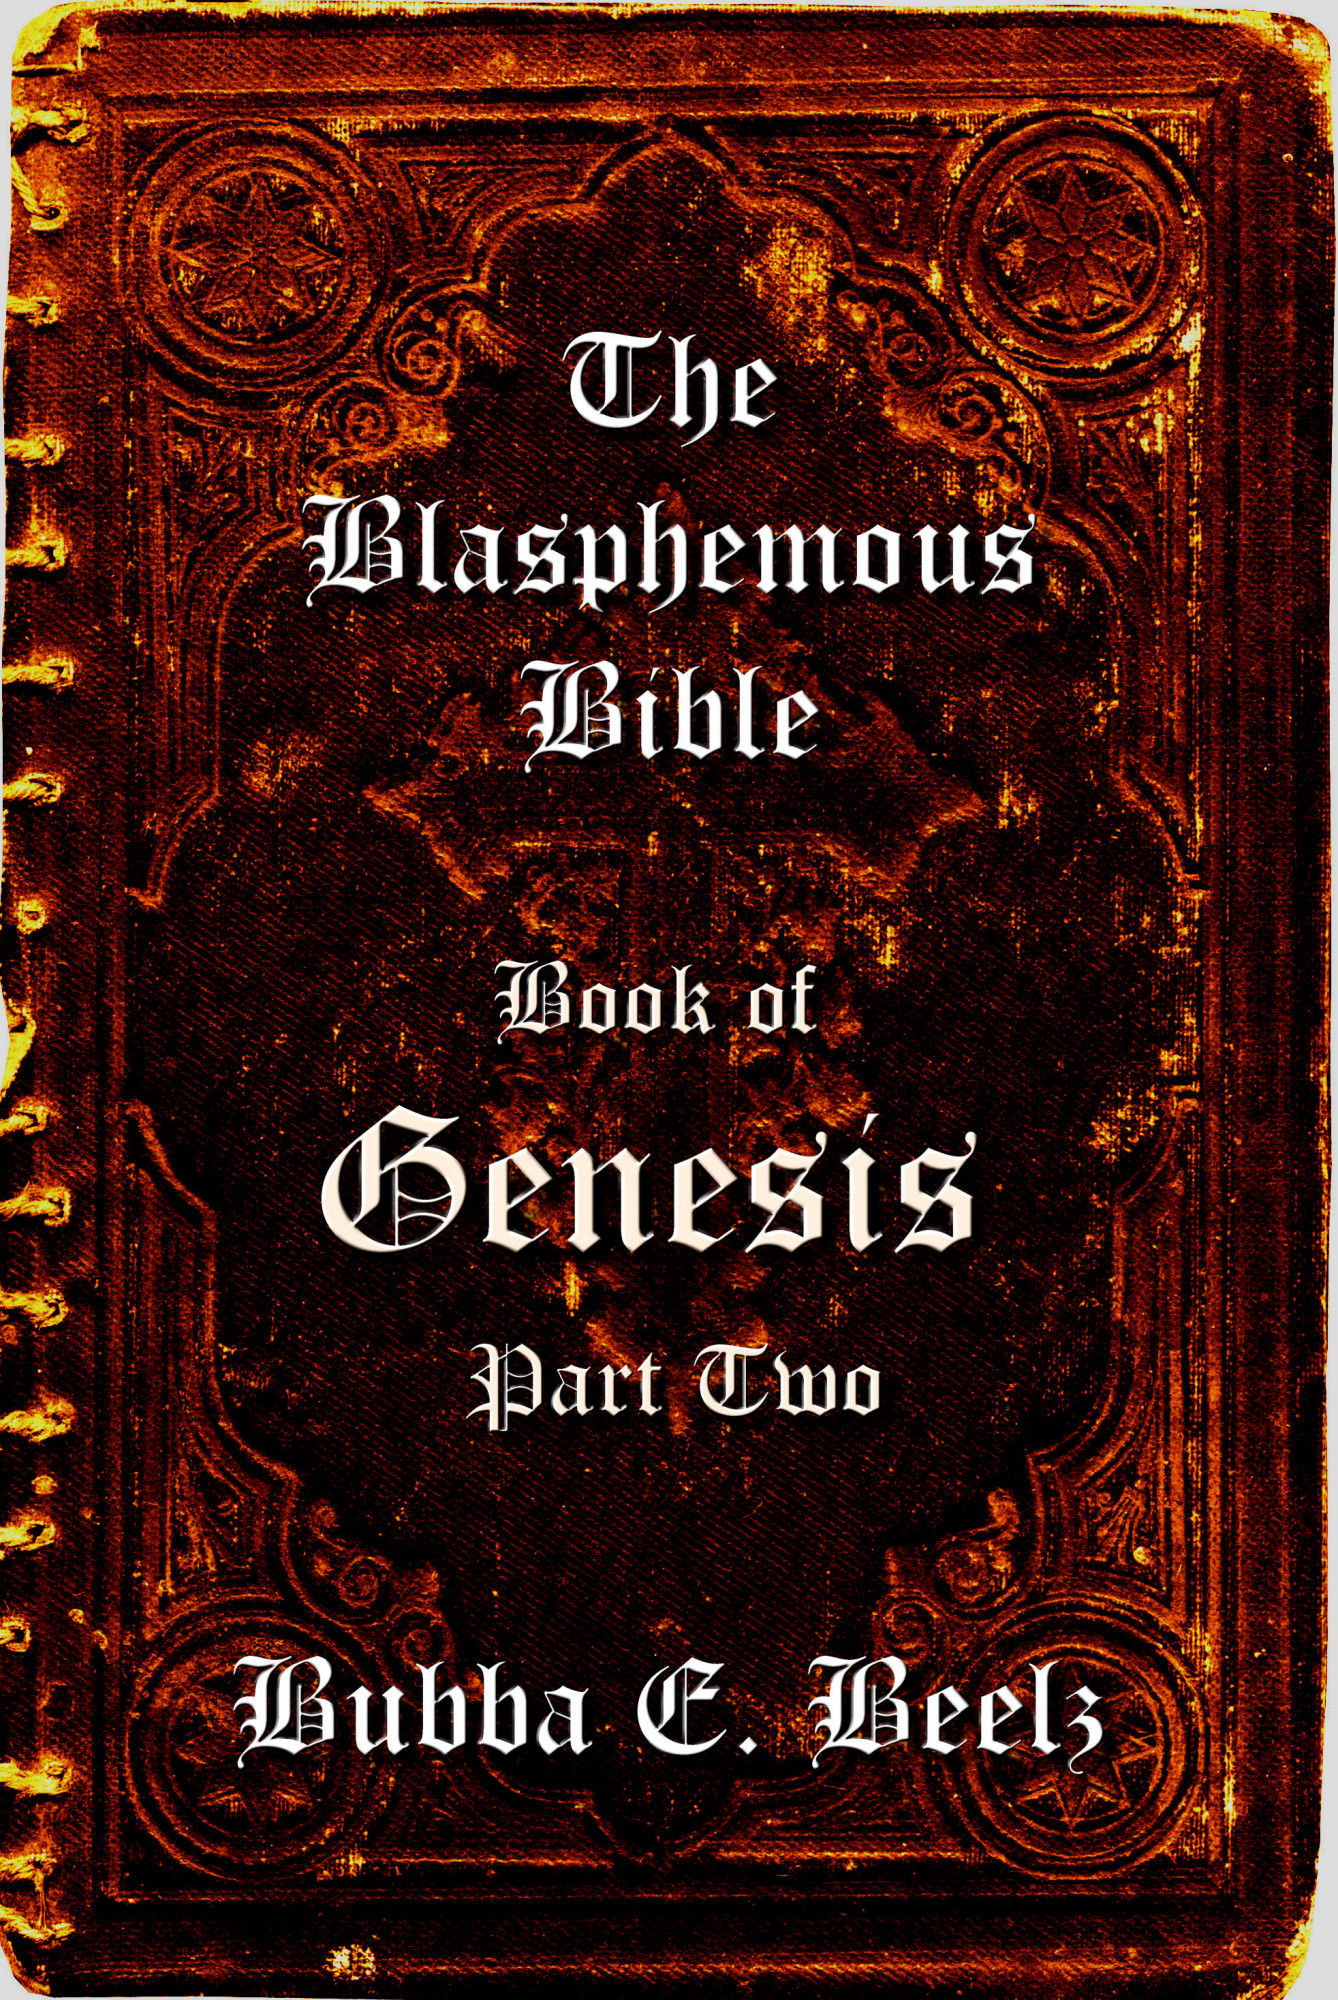 The Blasphemous Bible - Book of Genesis: Part Two By: Bubba E. Beelz